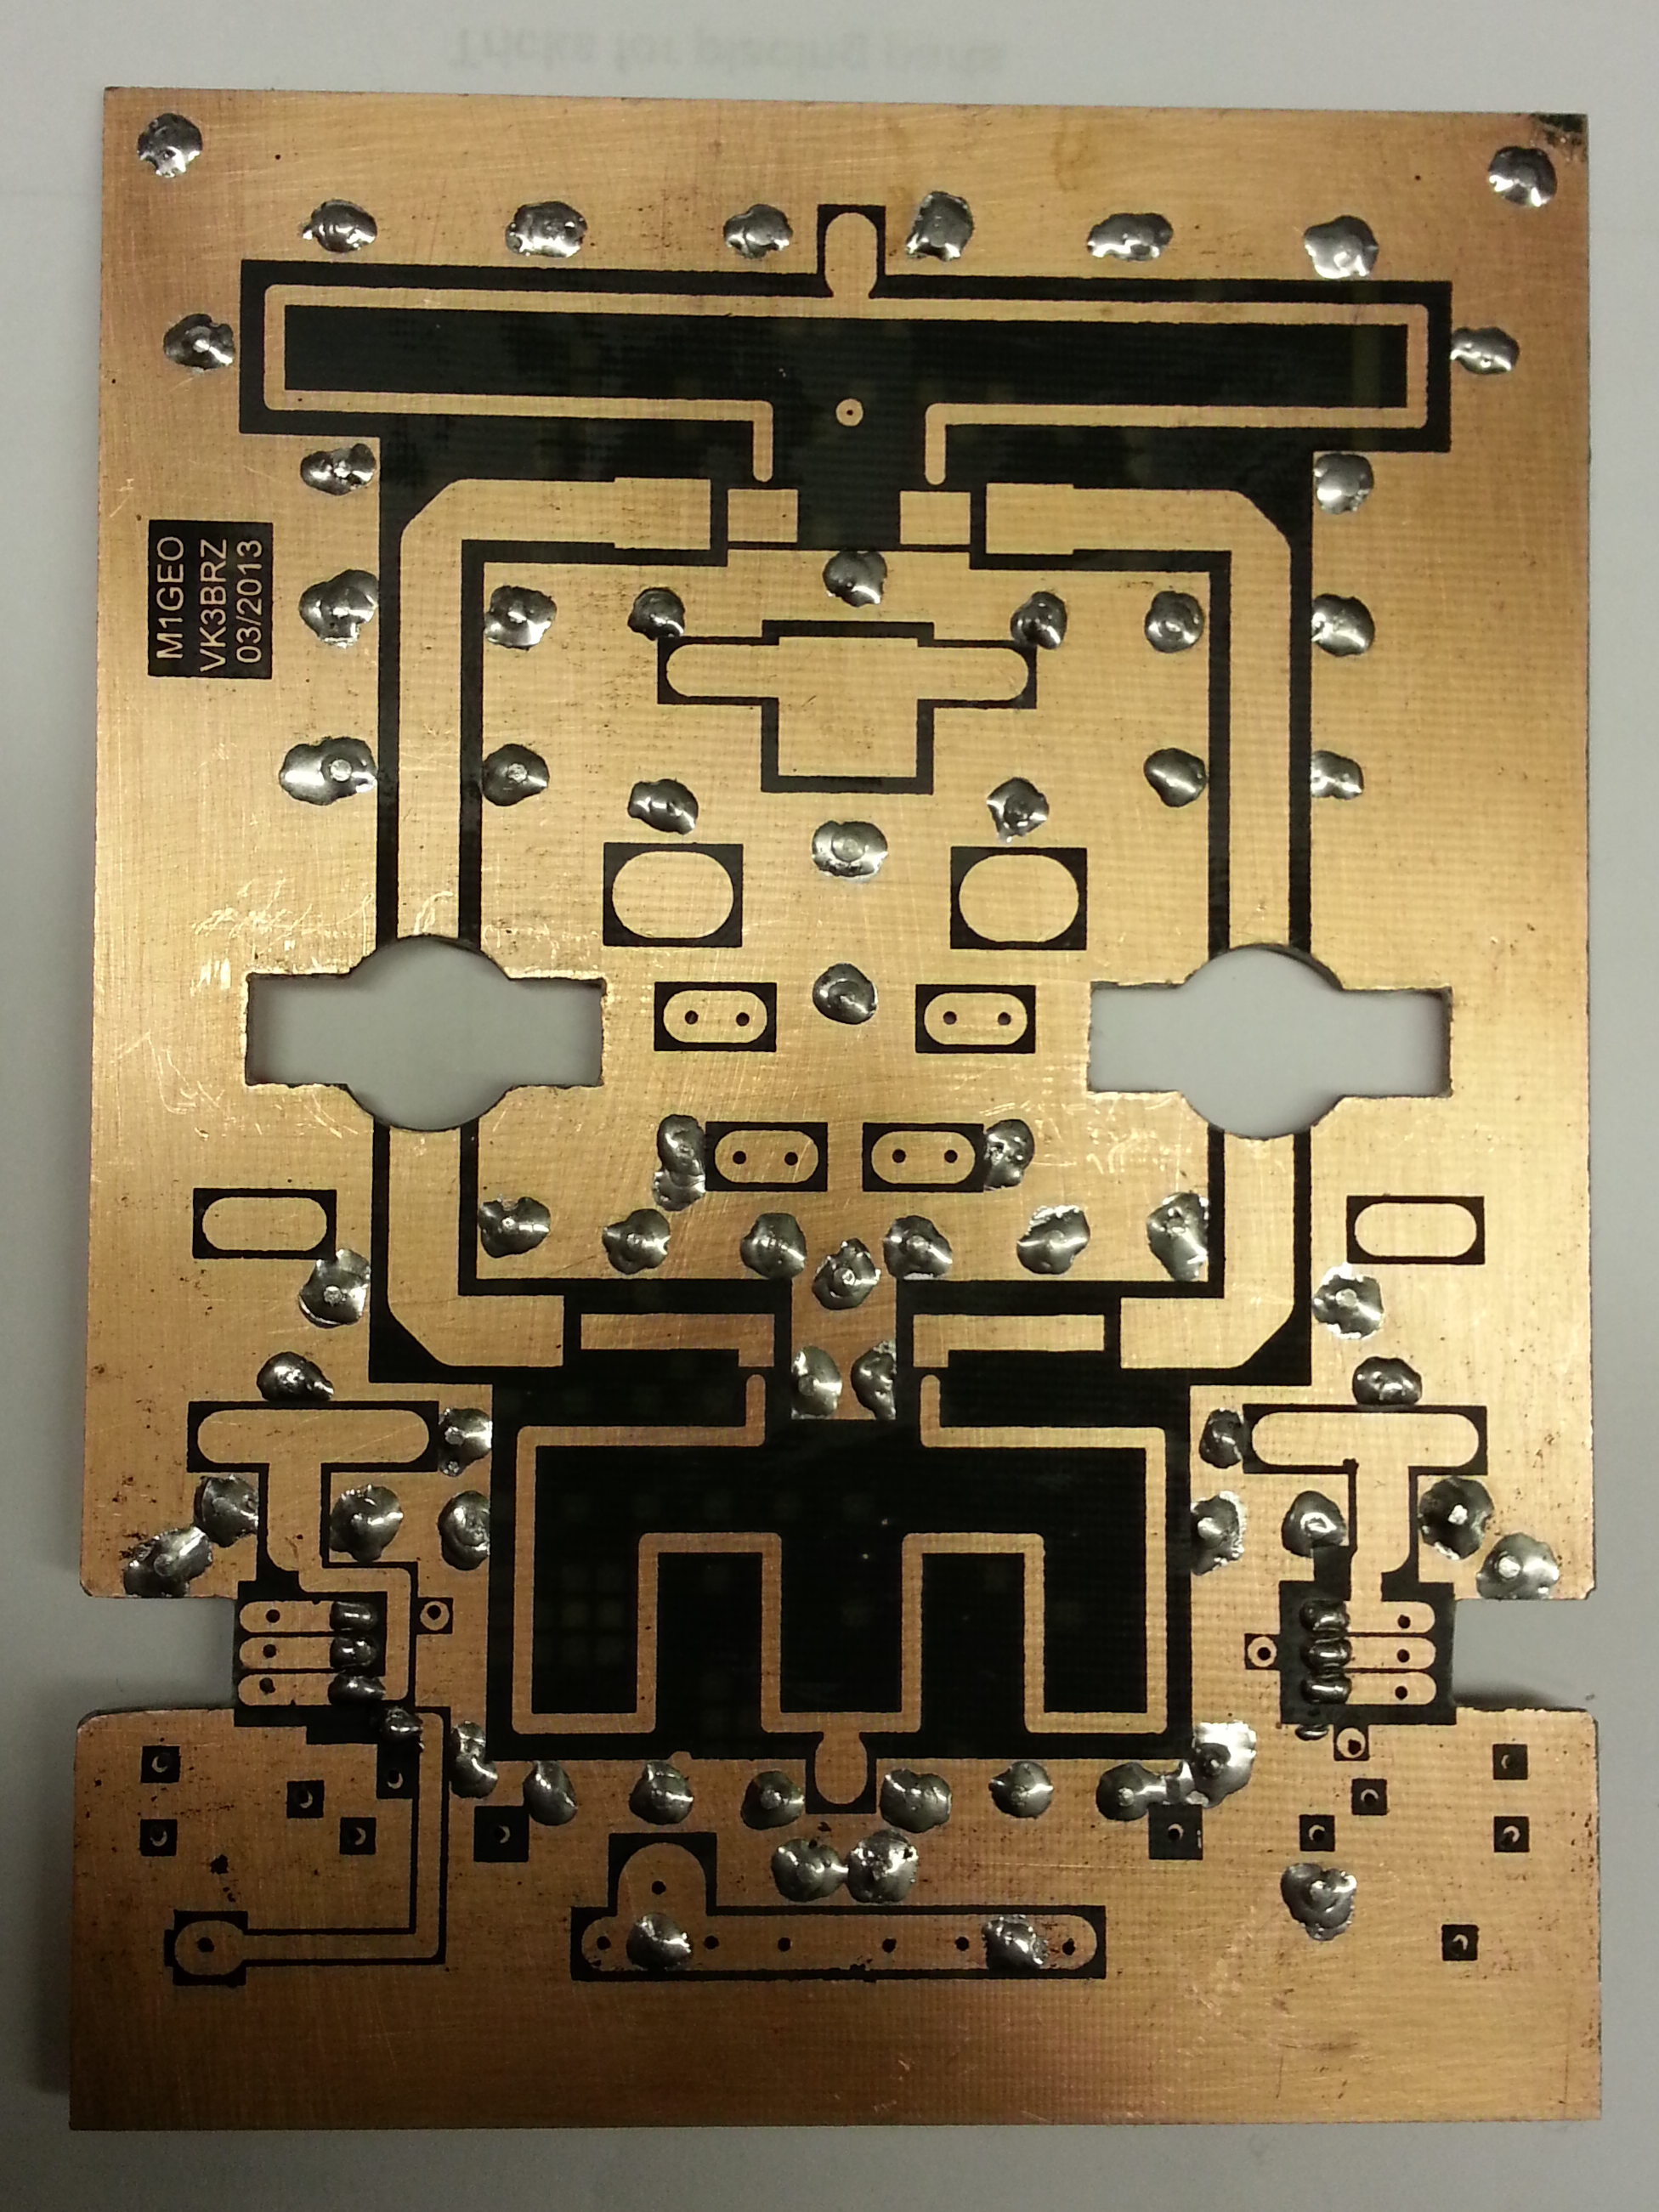 Making the PCB - Holes